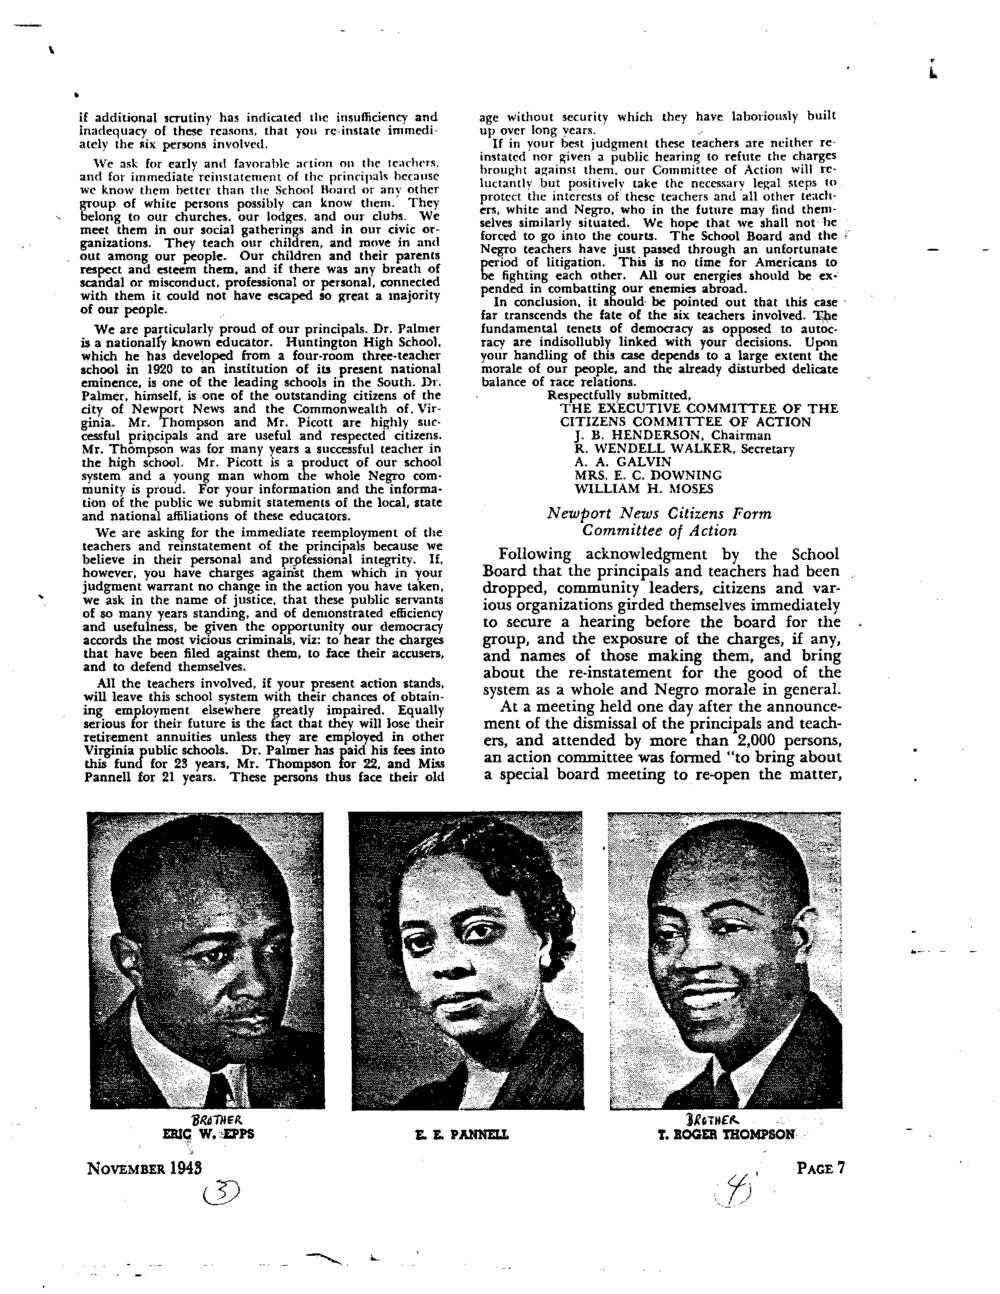 Zeta Lambda 1943 - The Newport News Case 2.png